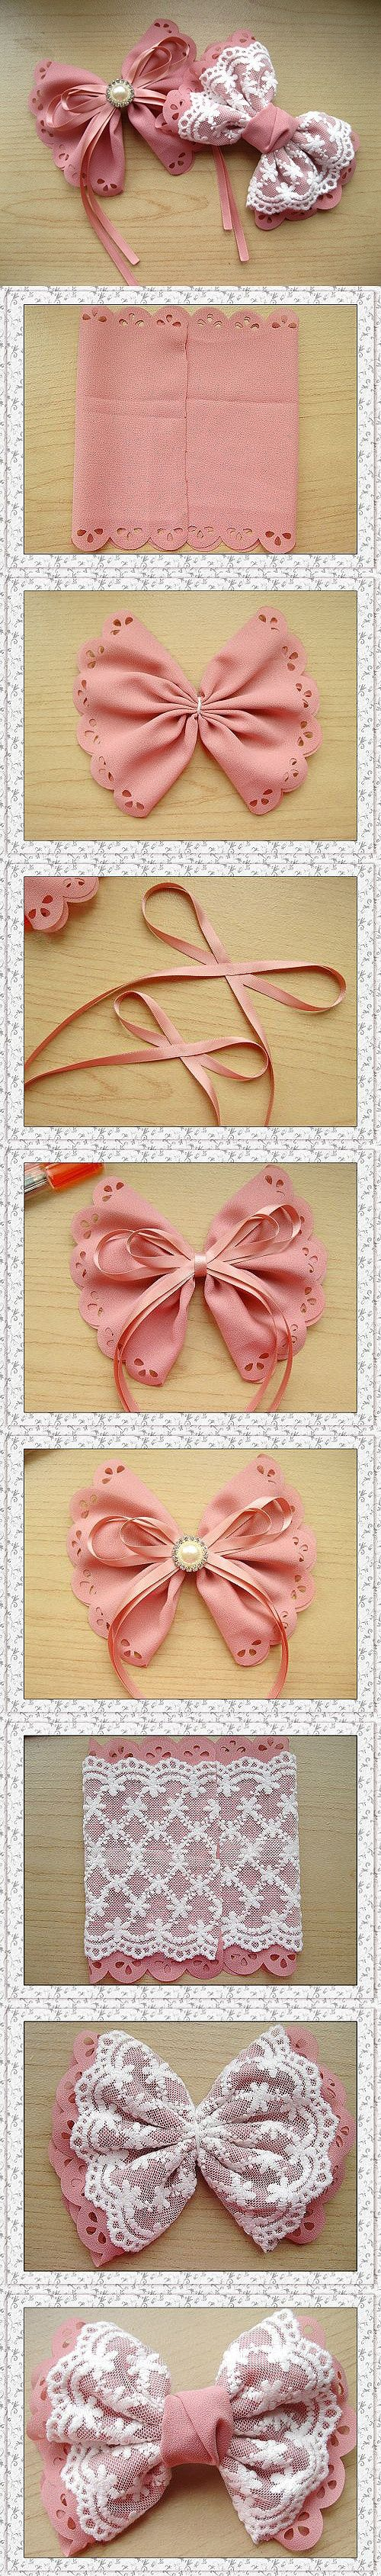 All the wonderful, wondrous bows you can think of! I was inspired by my latest project: to share with you how to make all different kinds of bows for your crafting or scrap booking or paper craft p...